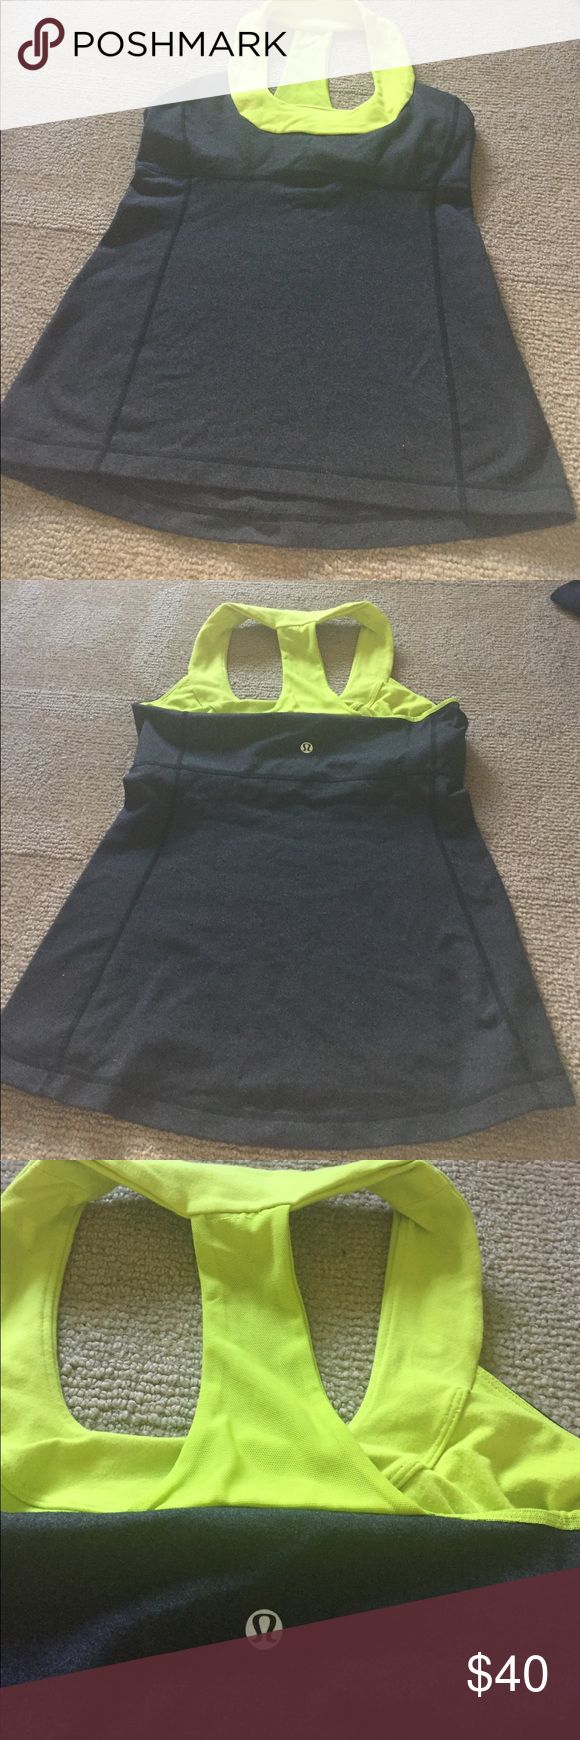 Lululemin tank with built in bra Hardly ever worn. Cute stylish and comfy! lululemon athletica Tops Tank Tops